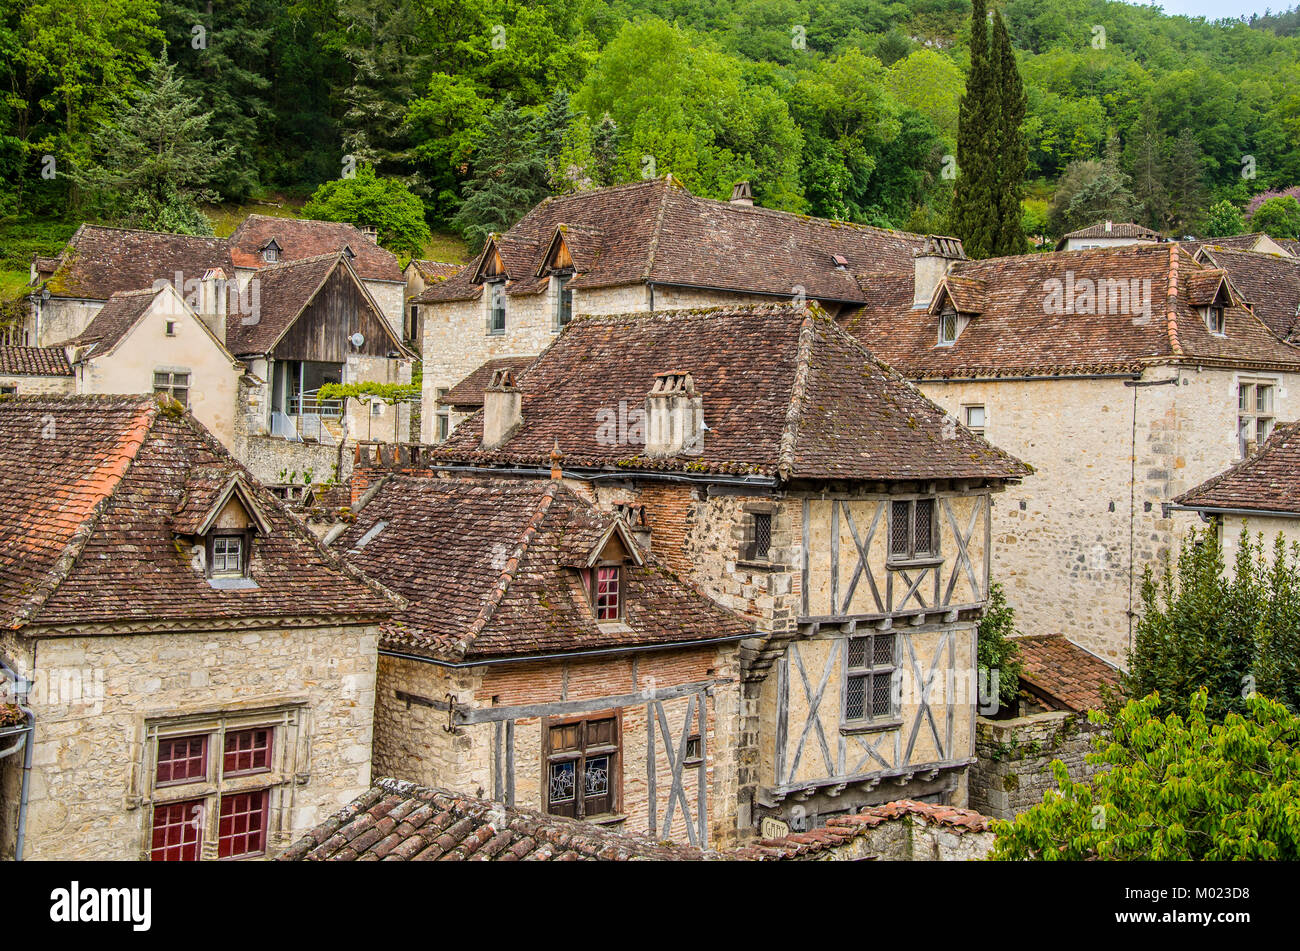 We see the villa of Saint Cirq Lapopie designated as one of the most beautiful medieval French villas located in - Stock Image